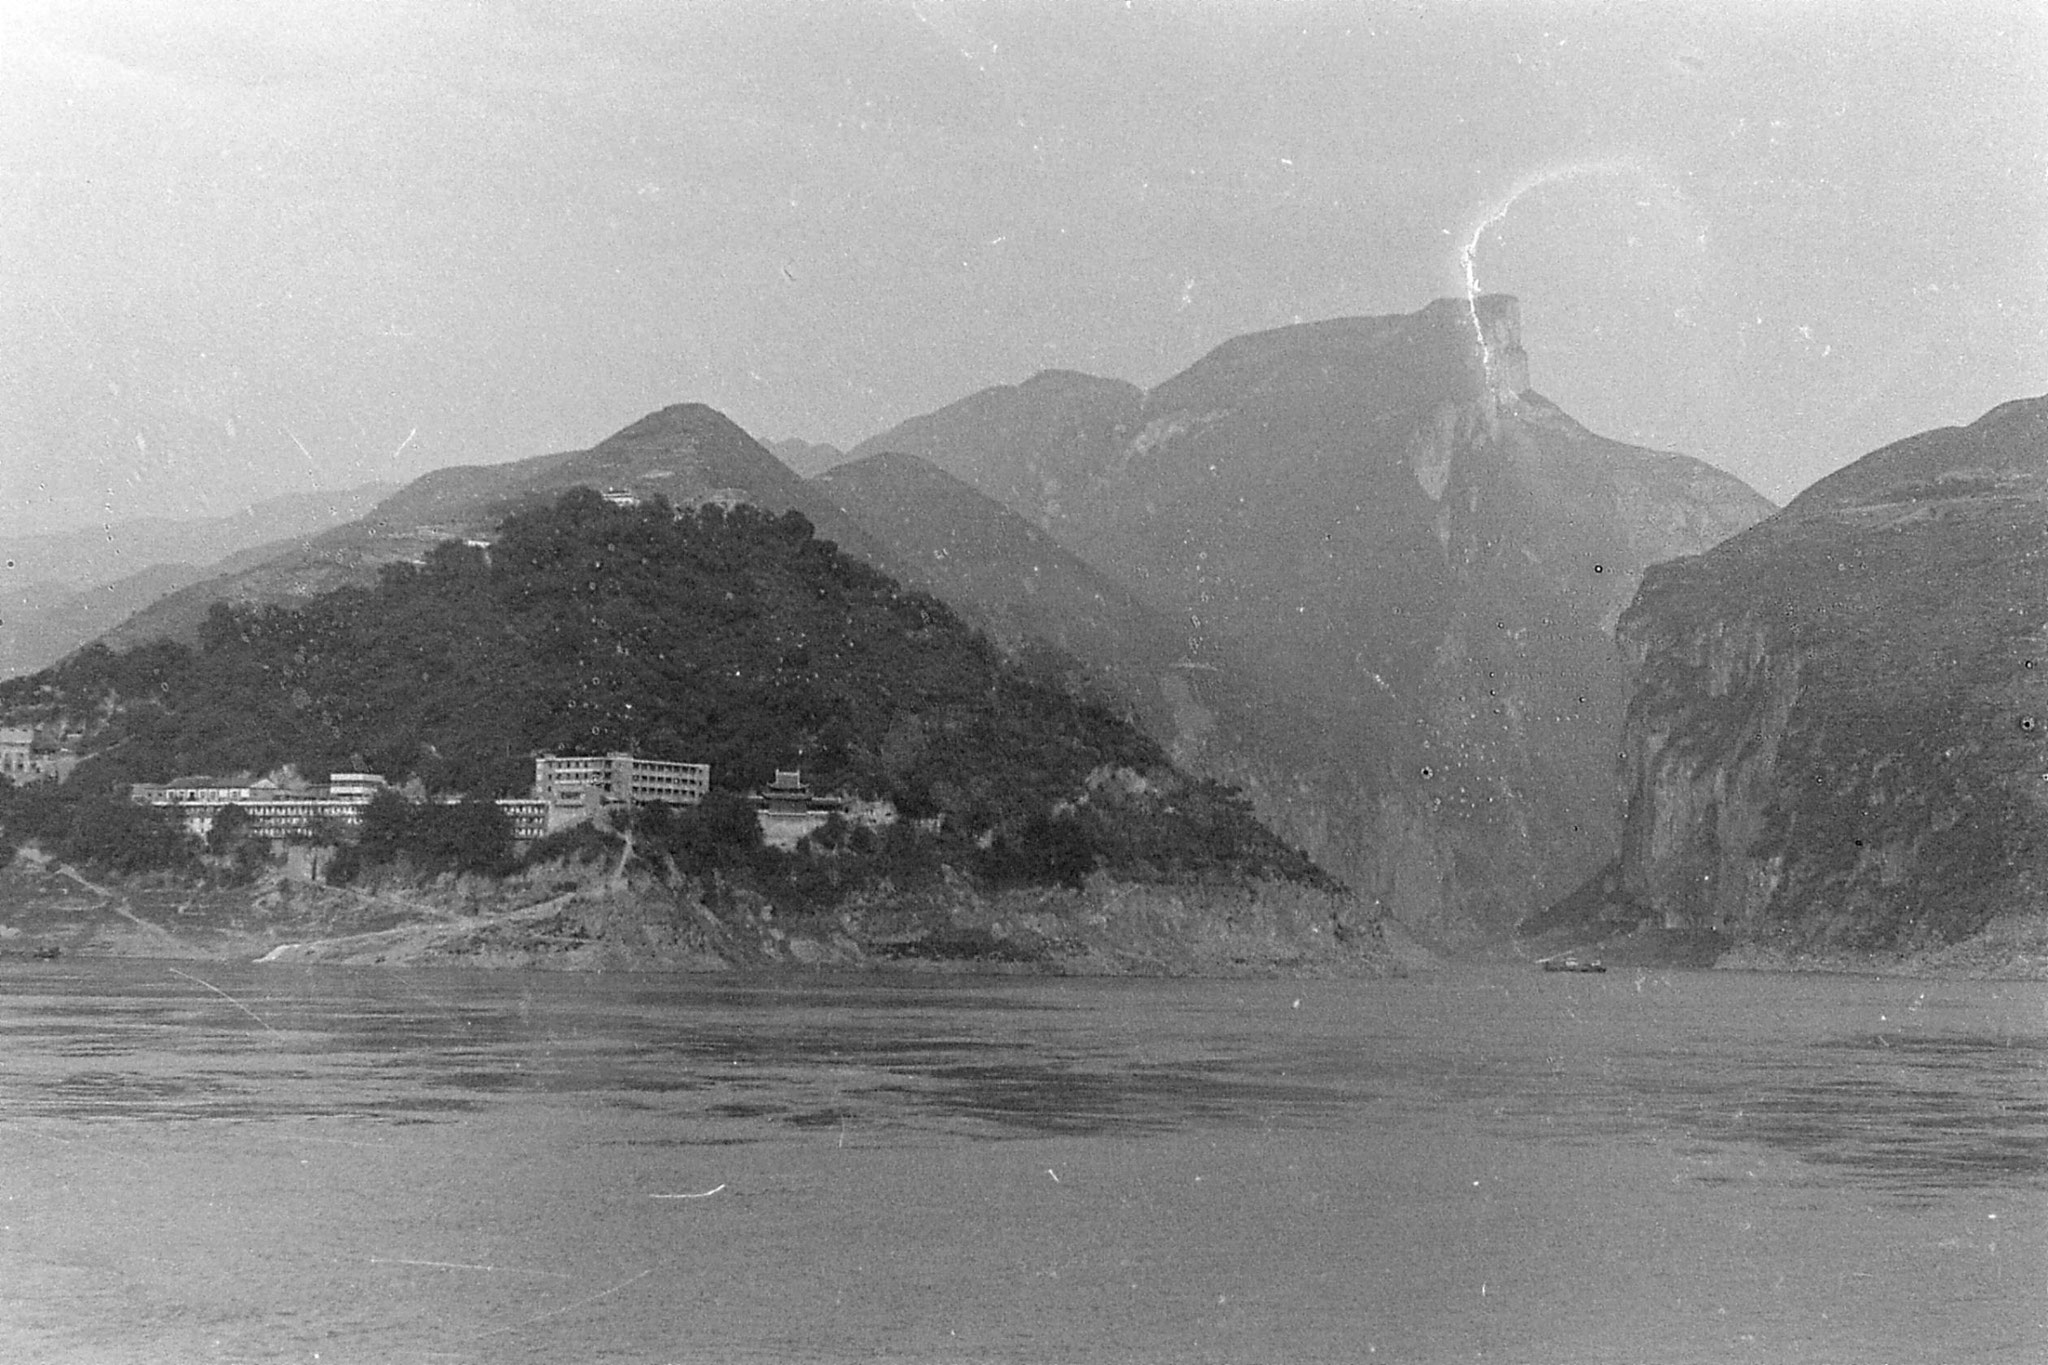 10/8/1989: 17: 1850hrs end of Qutang Gorge